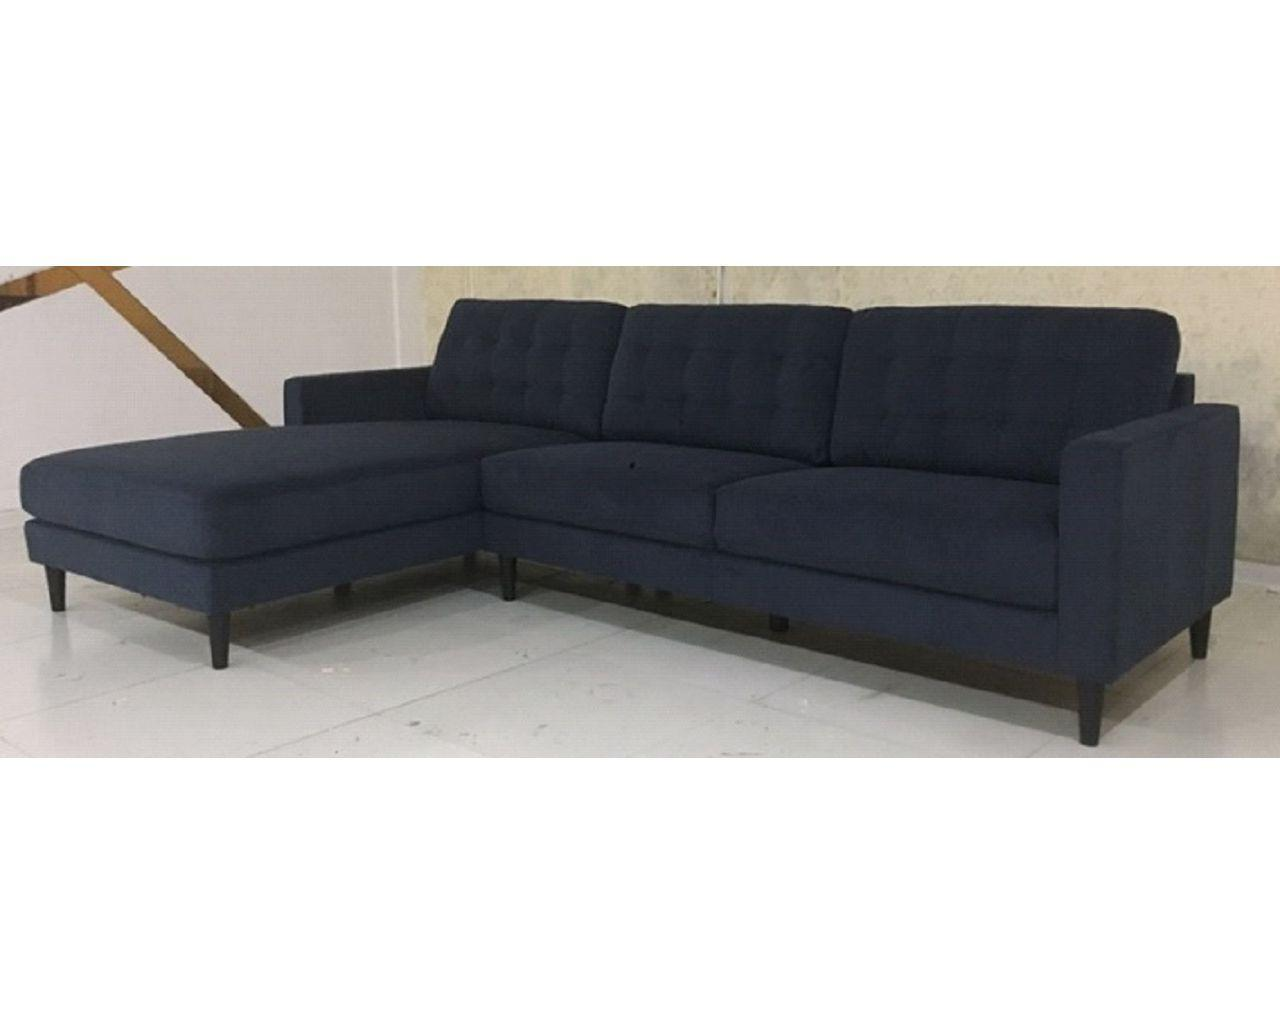 Black Fabric Sofa Chaise with chaise on the Left Side when facing it